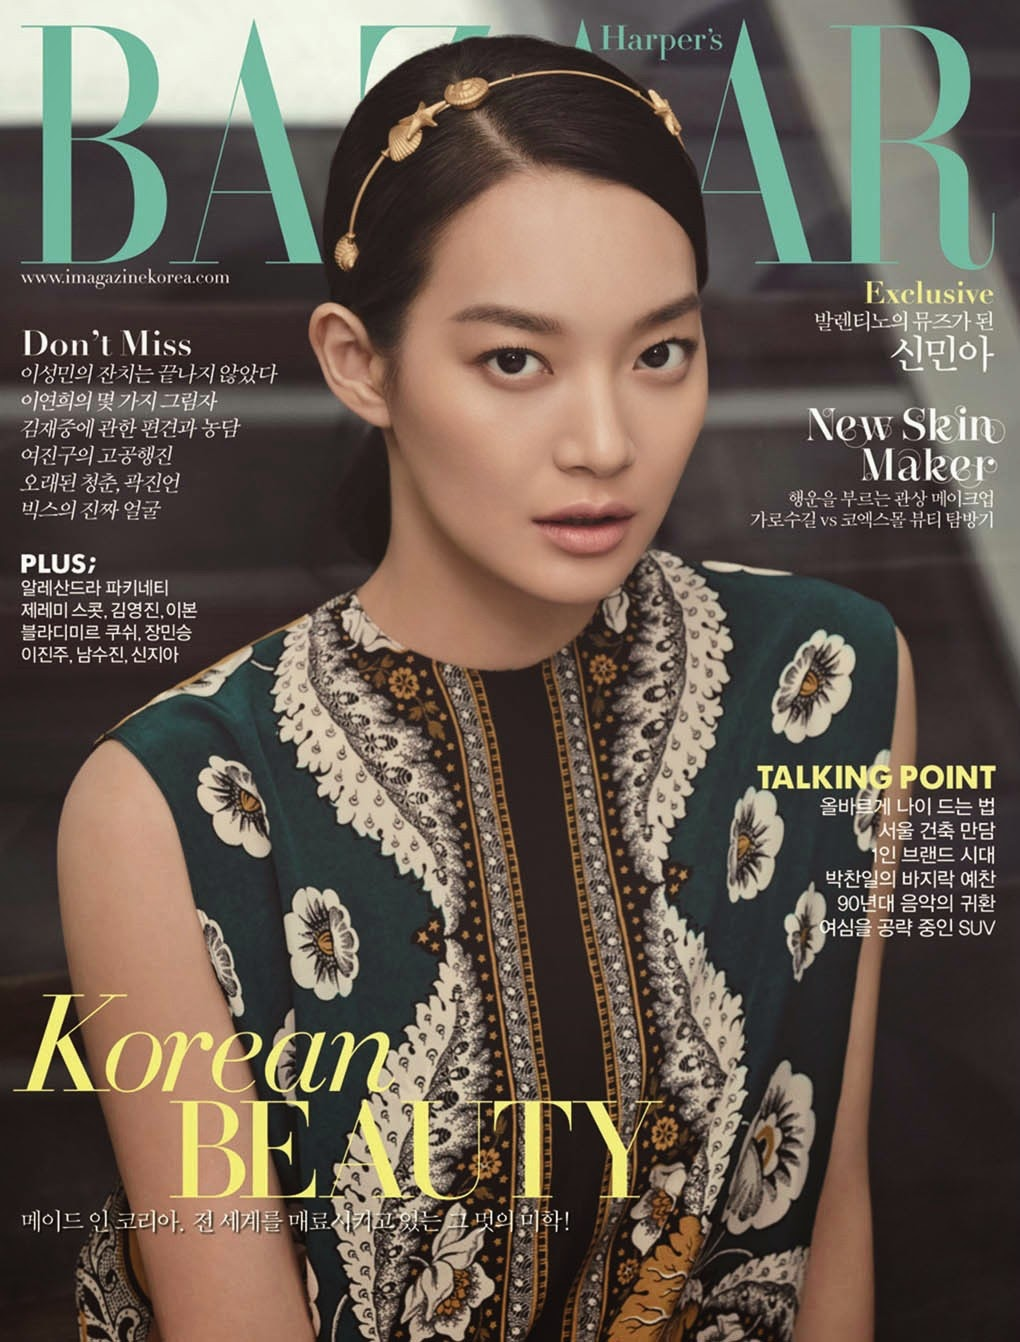 Actress: Shin Min A for Harper's Bazaar, Korea